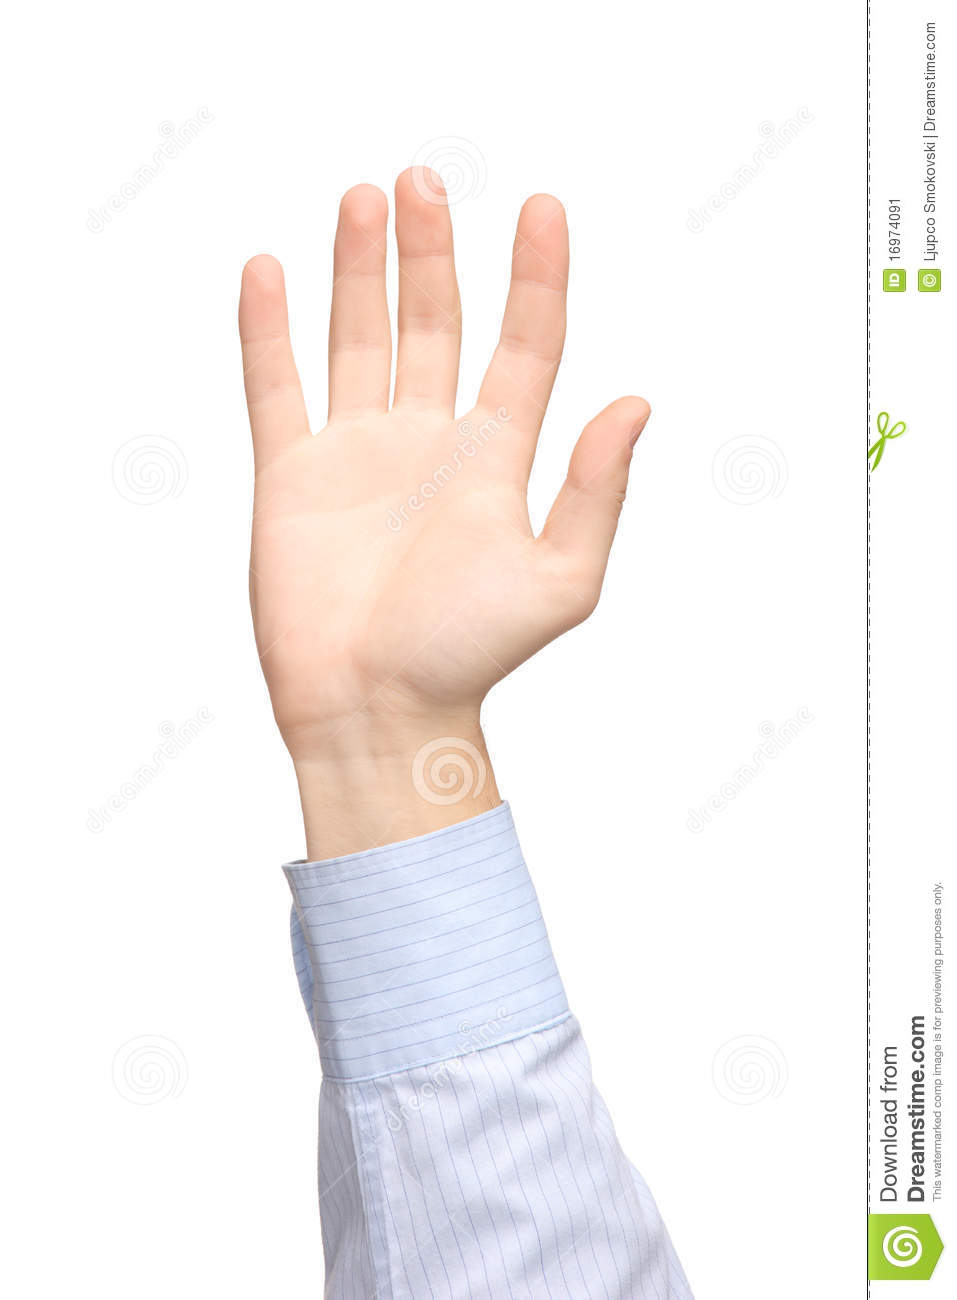 View Of A Raised Hand Stock Image - Image: 16974091